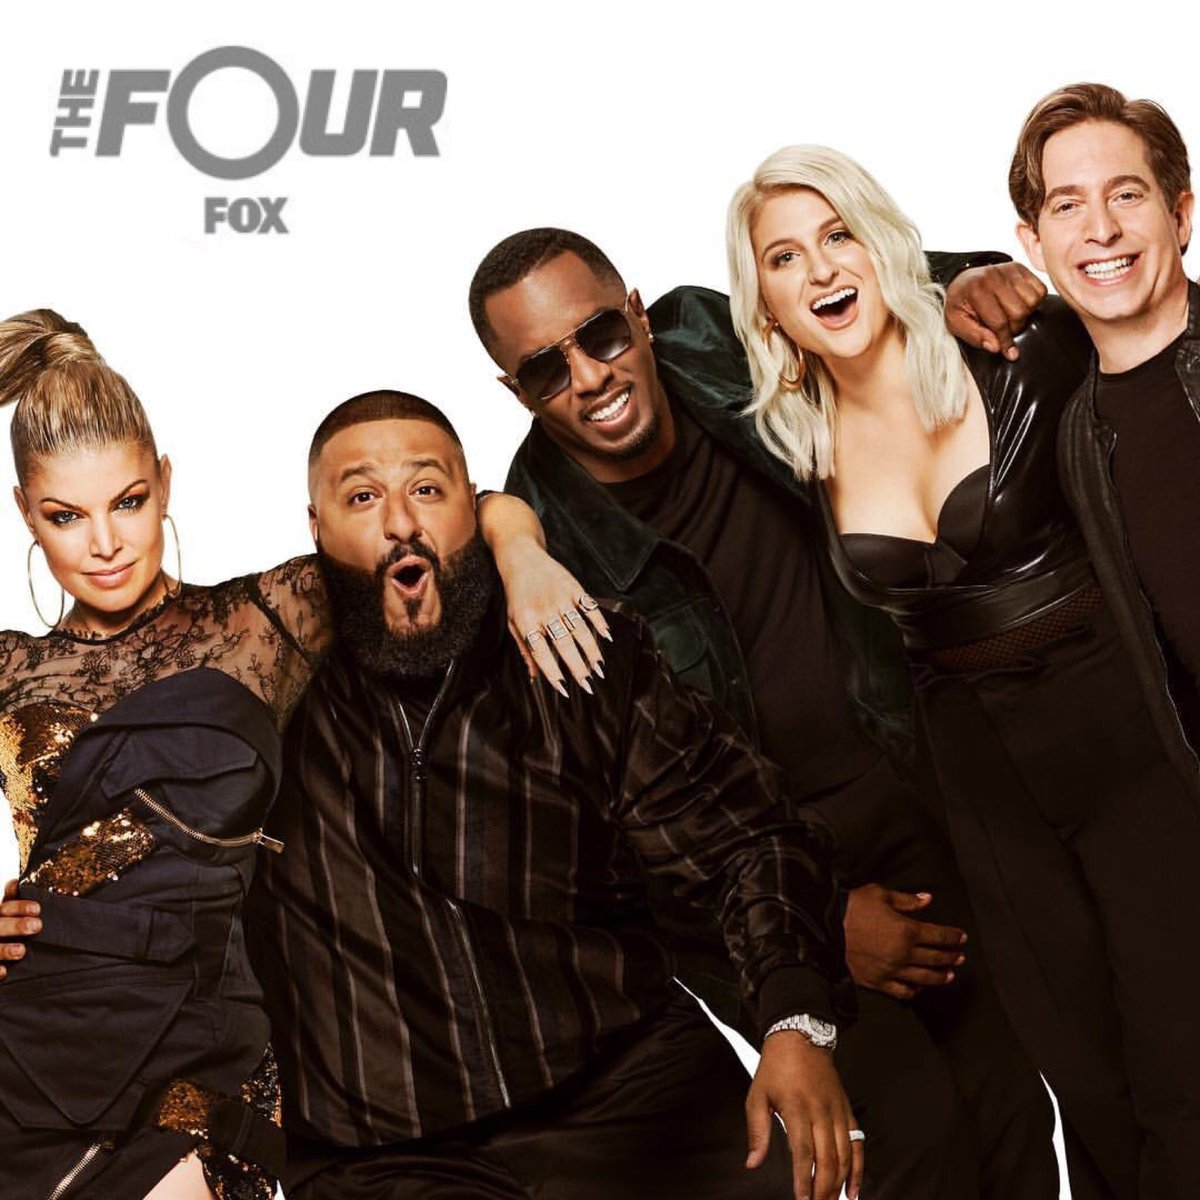 RT @UniverseFergie: TONIGHT is the night! ????????????????????????  #TheFour tonight at 8/7c on FOX!!!! https://t.co/rSrqAUt6E4